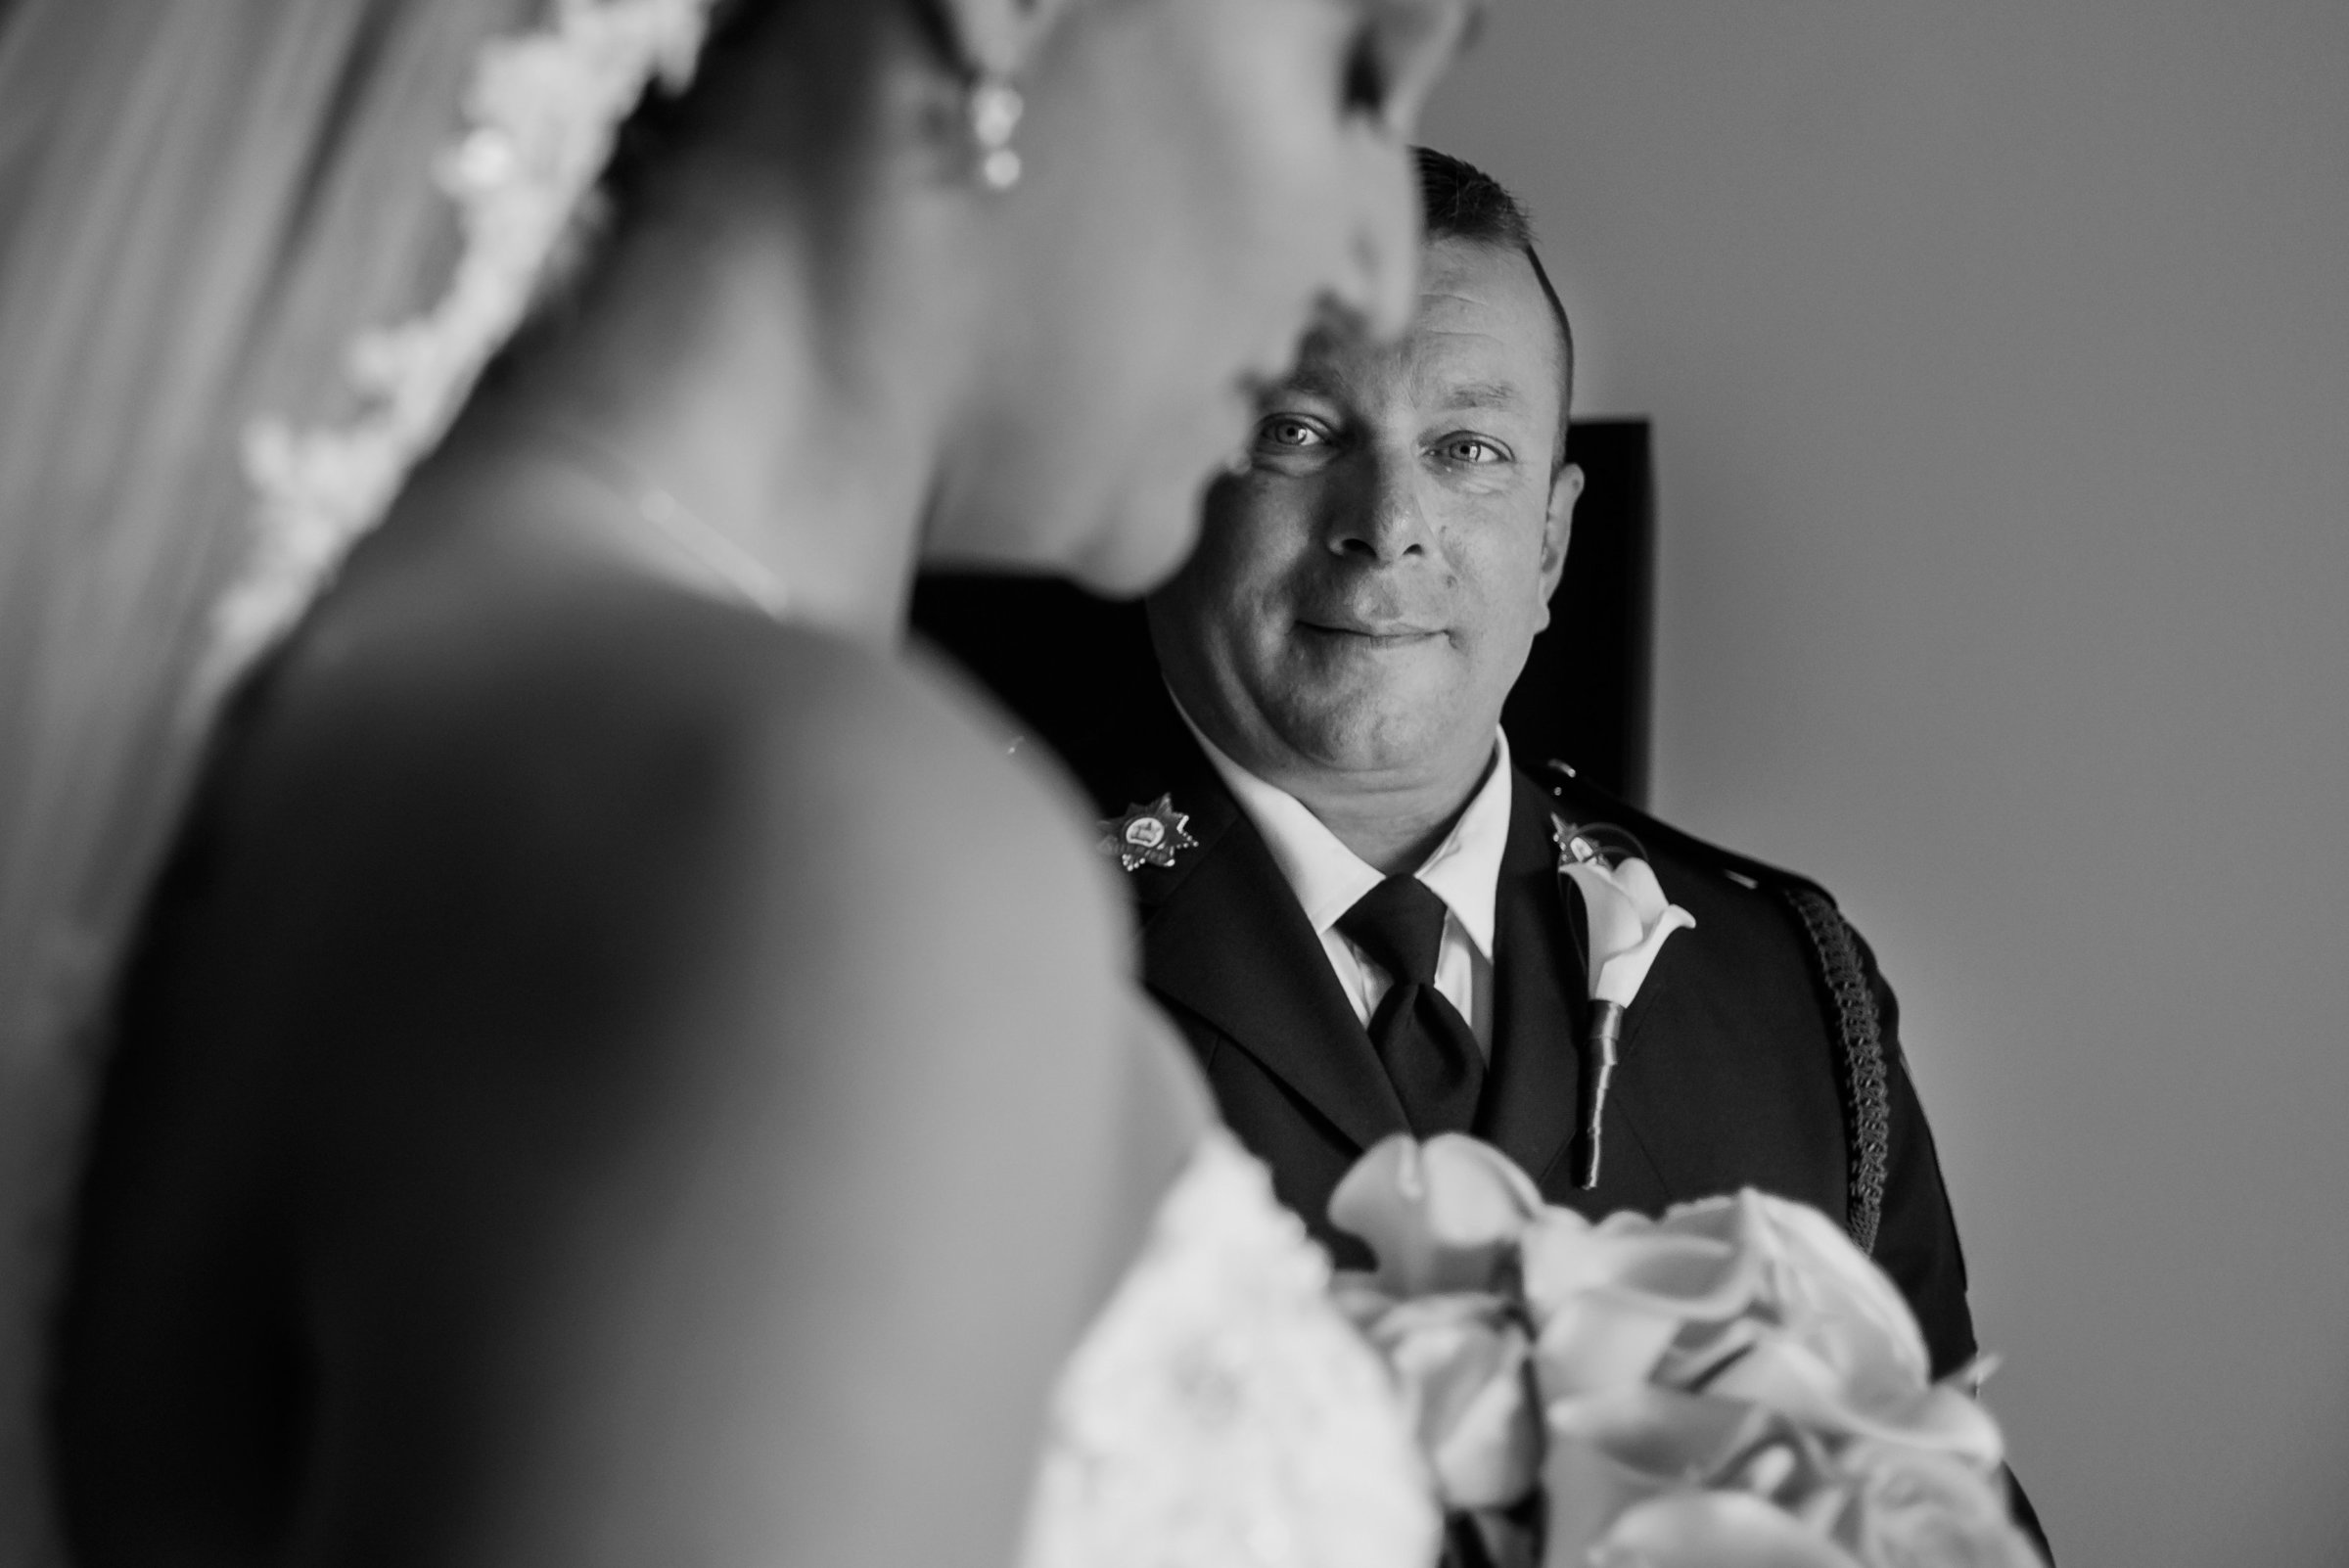 Canmore Coast Hotel Wedding Photo by Chrystal Stringer